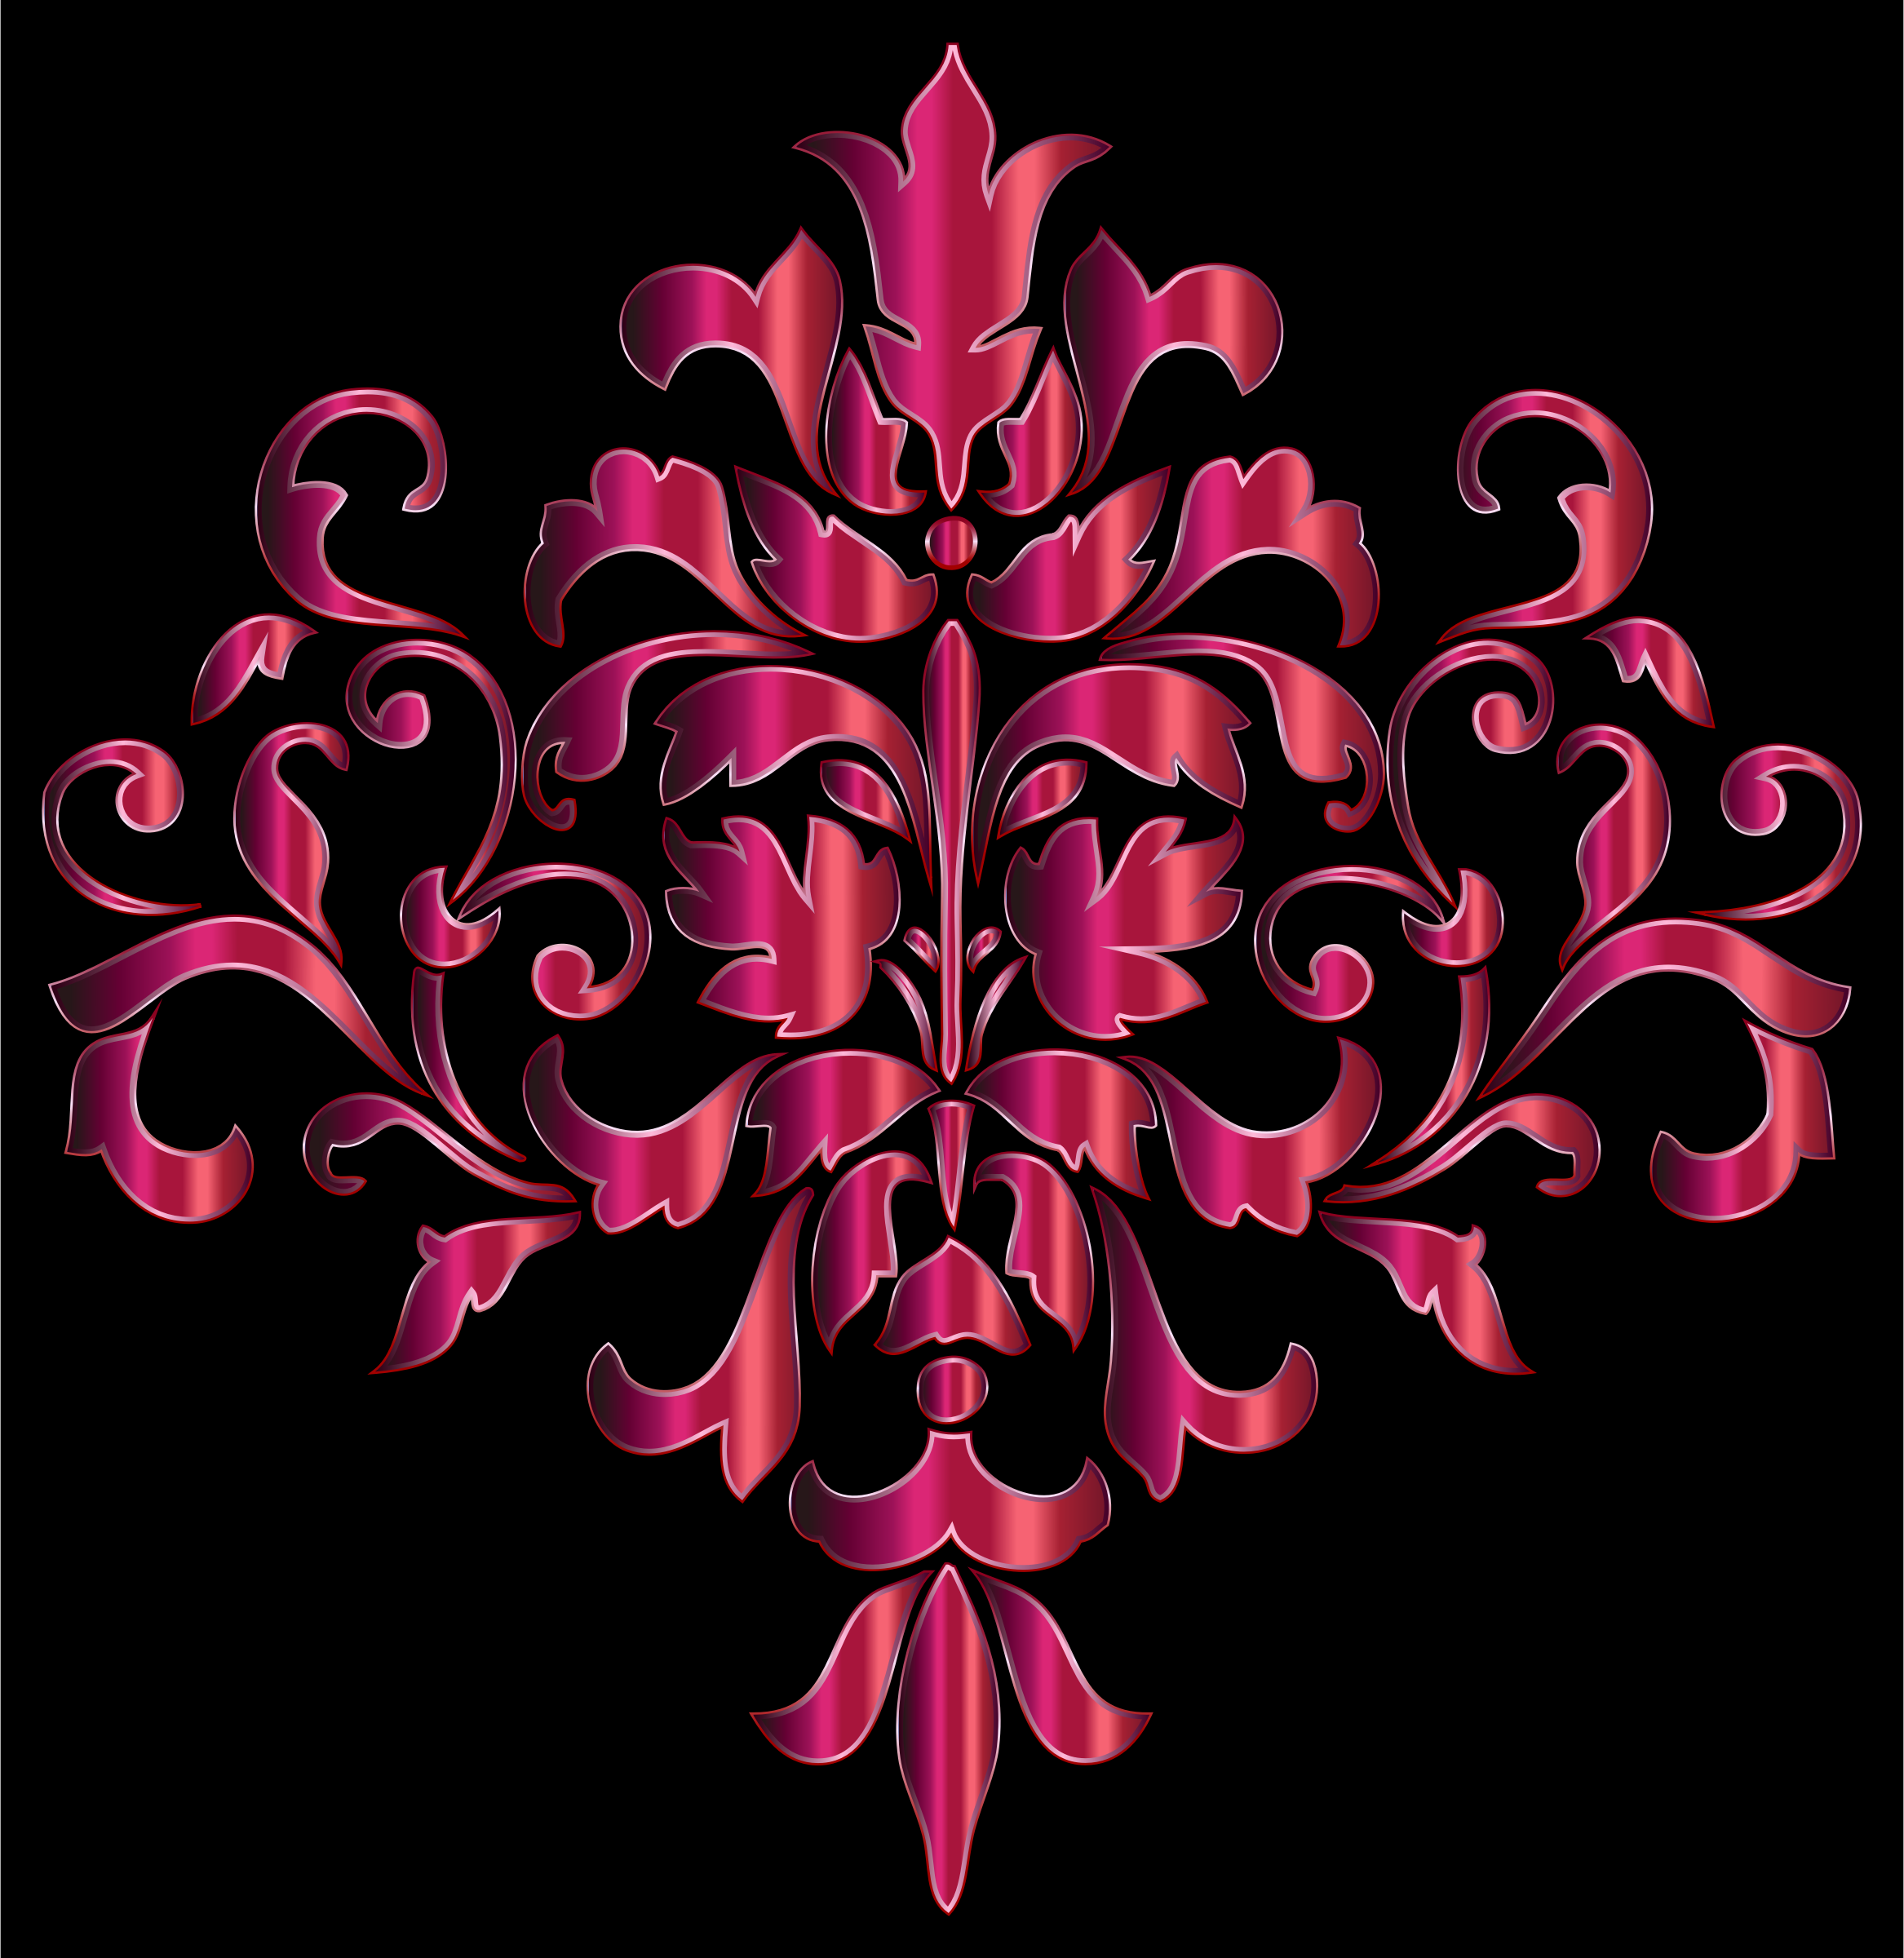 Festive Damask Design 2 by GDJ